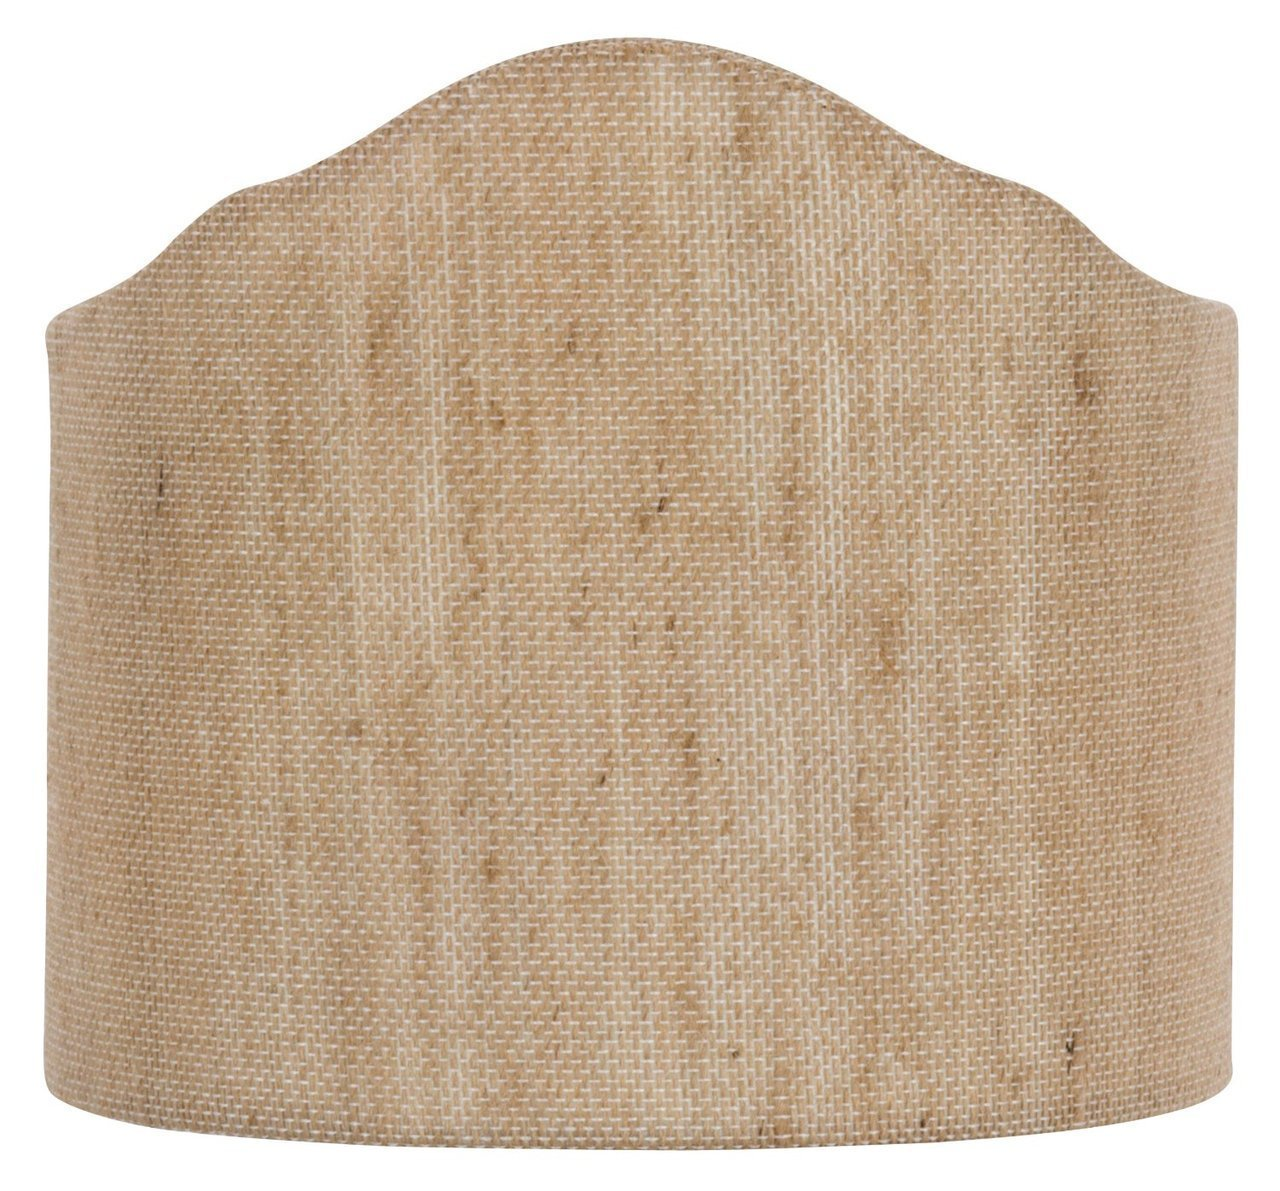 Upgradelights Natural Beige Linen Wall Sconce Shield Clip on Half Lampshade (Beige)